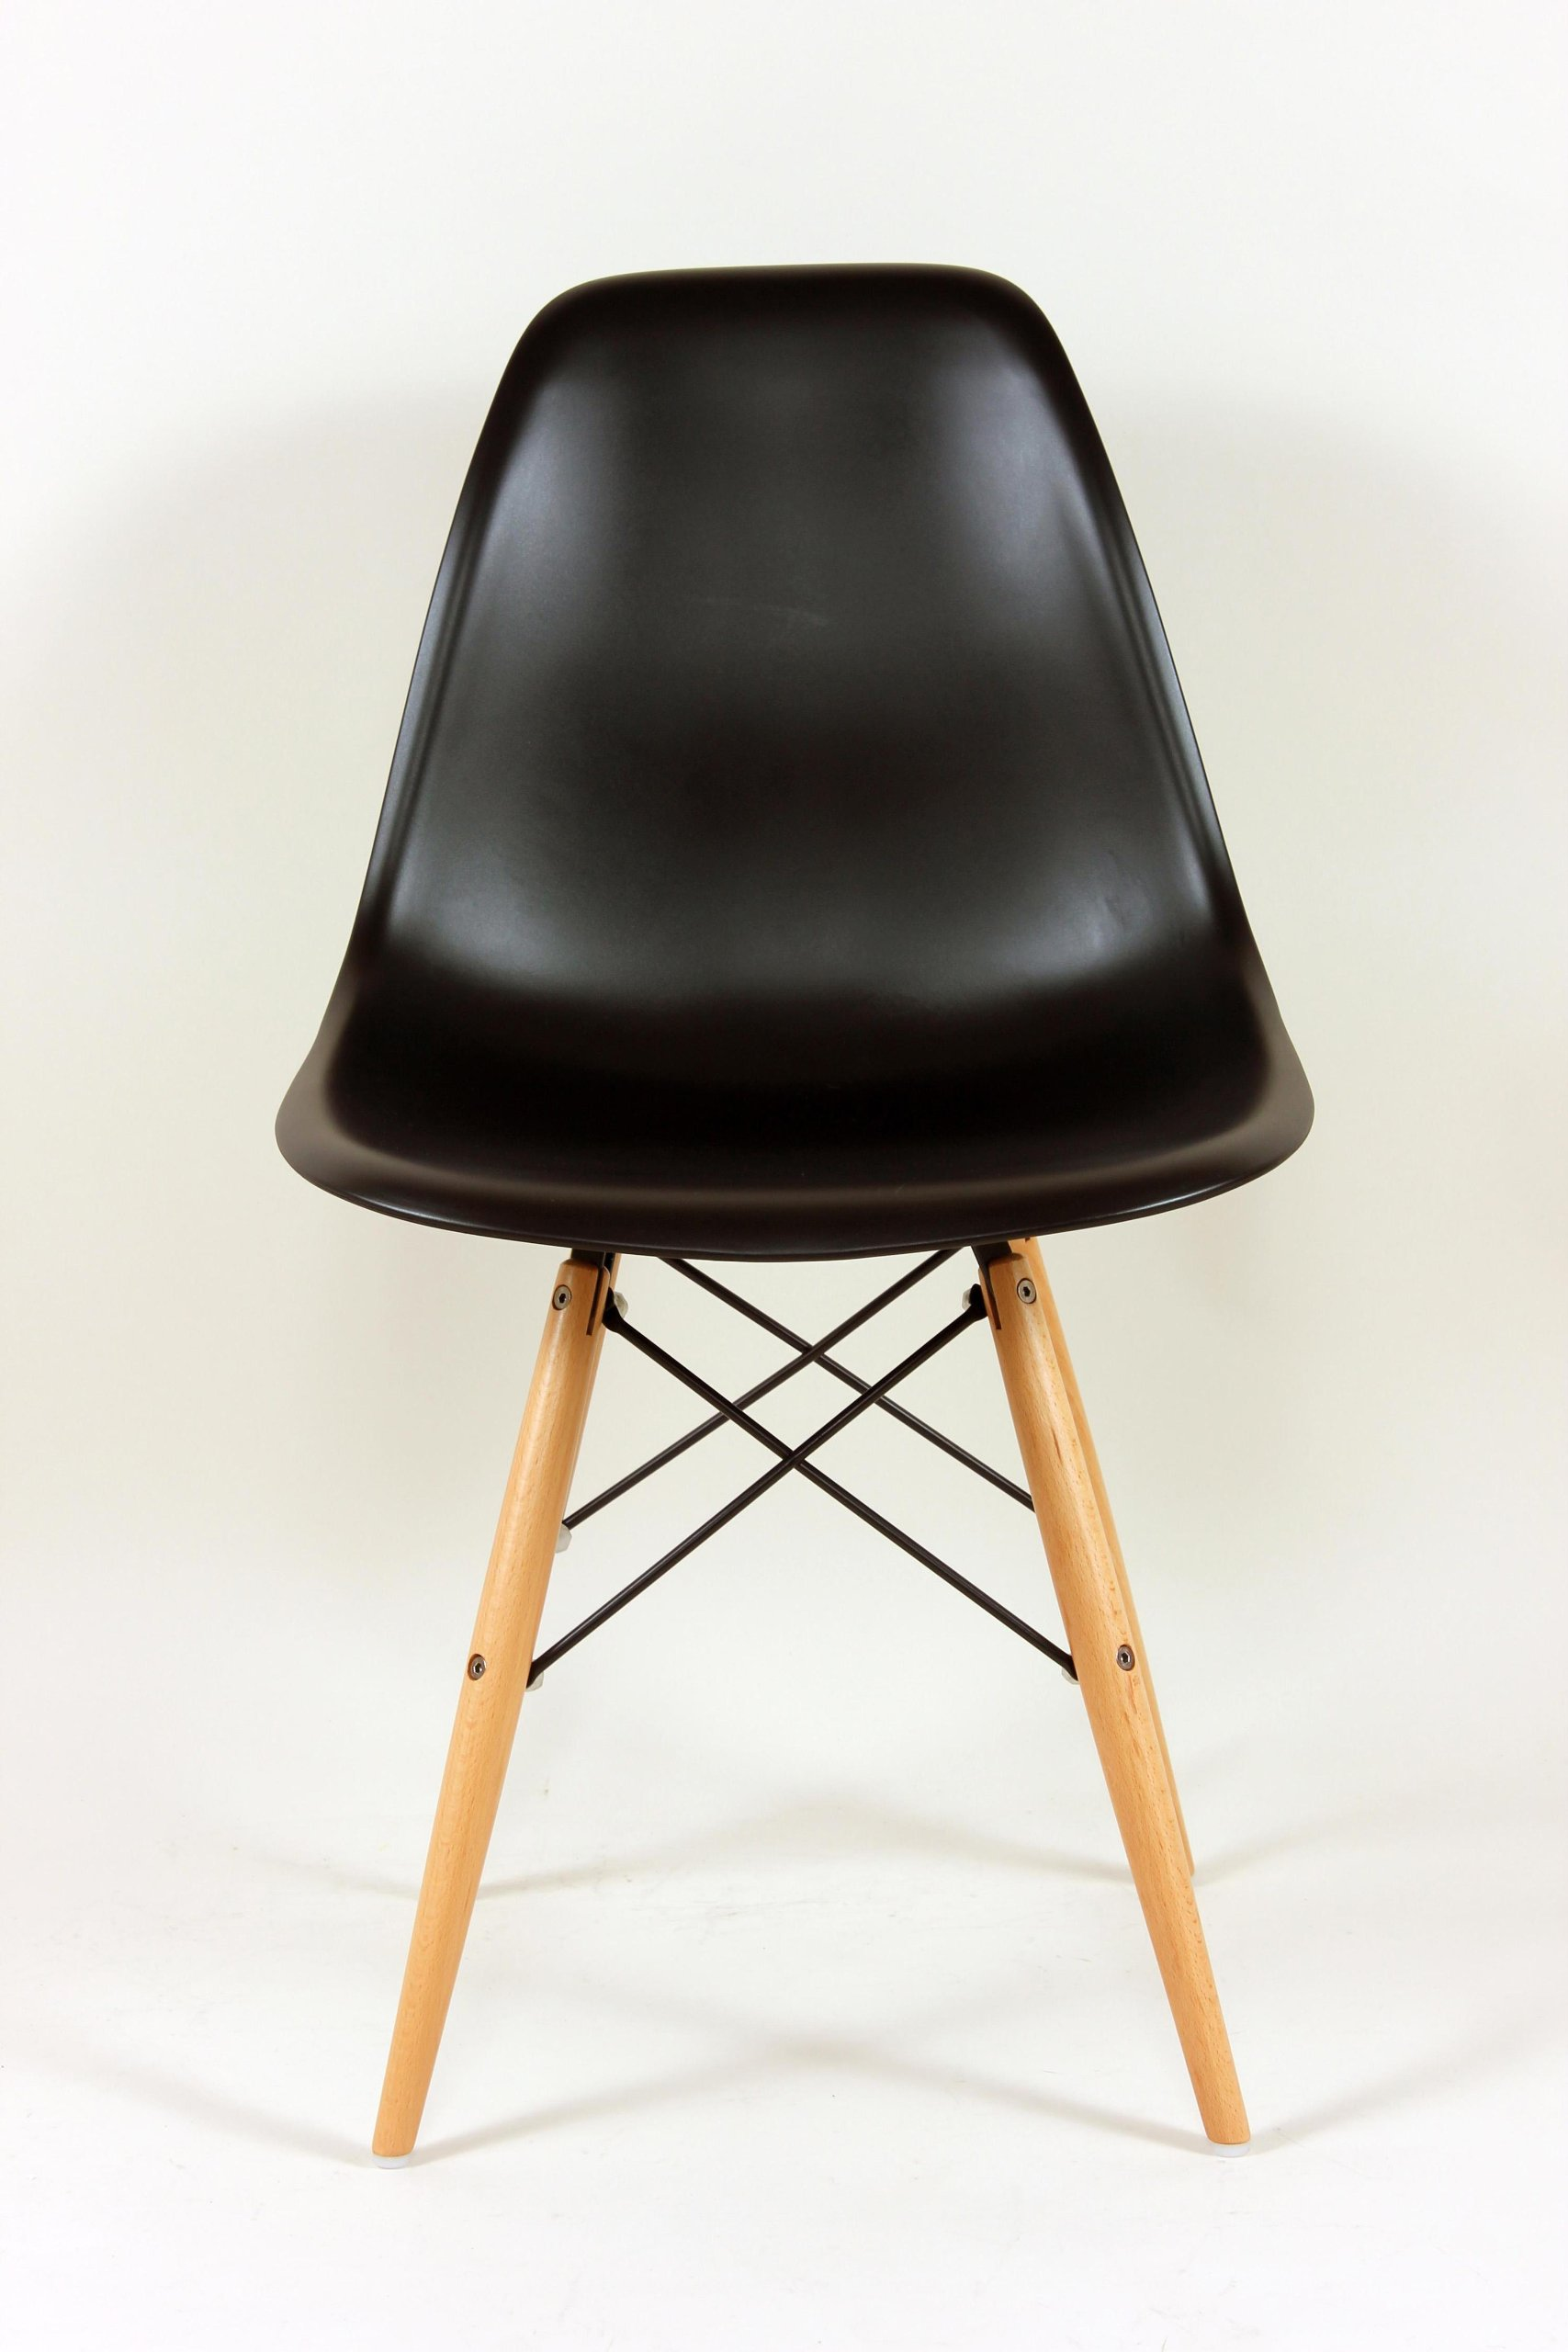 eames style plastic chair foldable camping chairs navy green dsw mid century molded